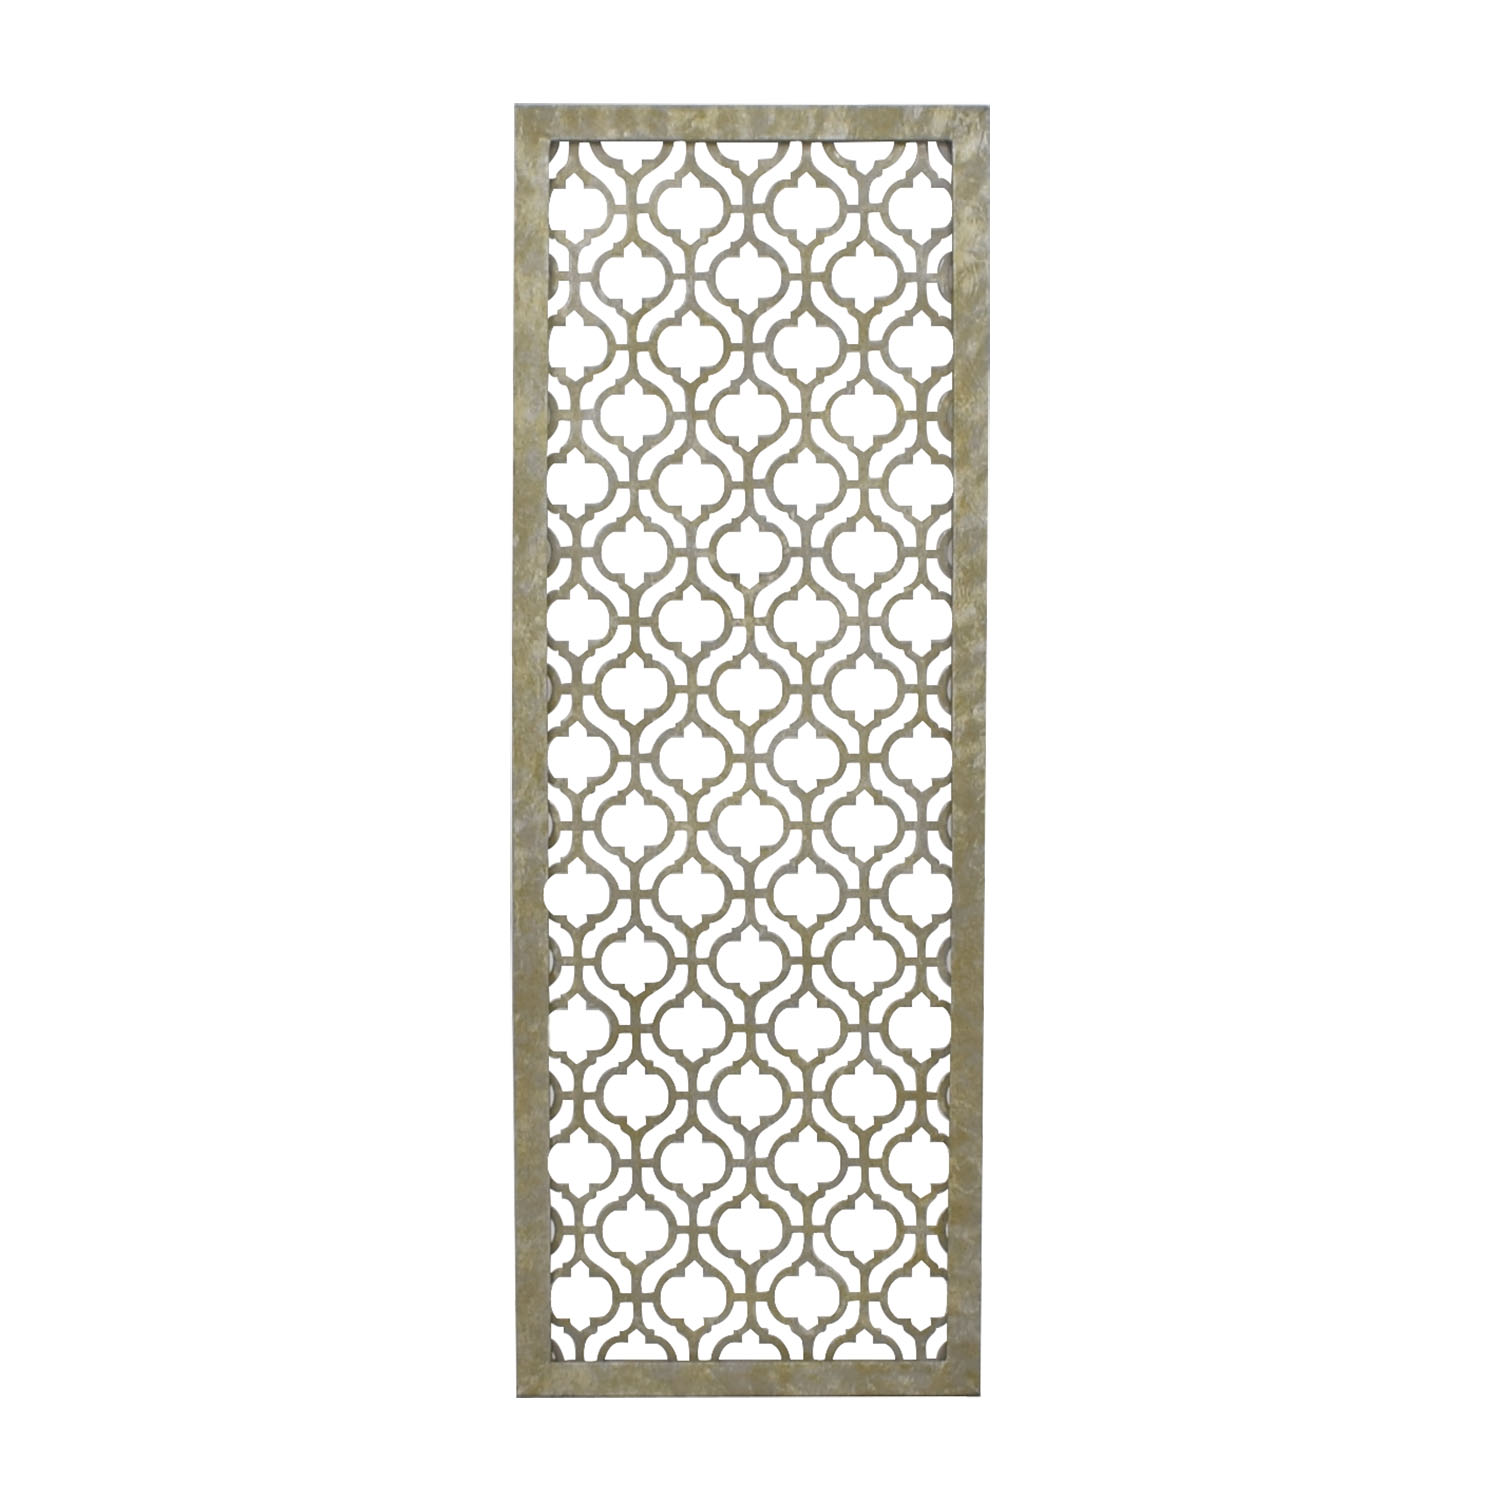 shop Pier 1 Imports Trellis Metal Wall Panel Pier 1 Imports Decorative Accents